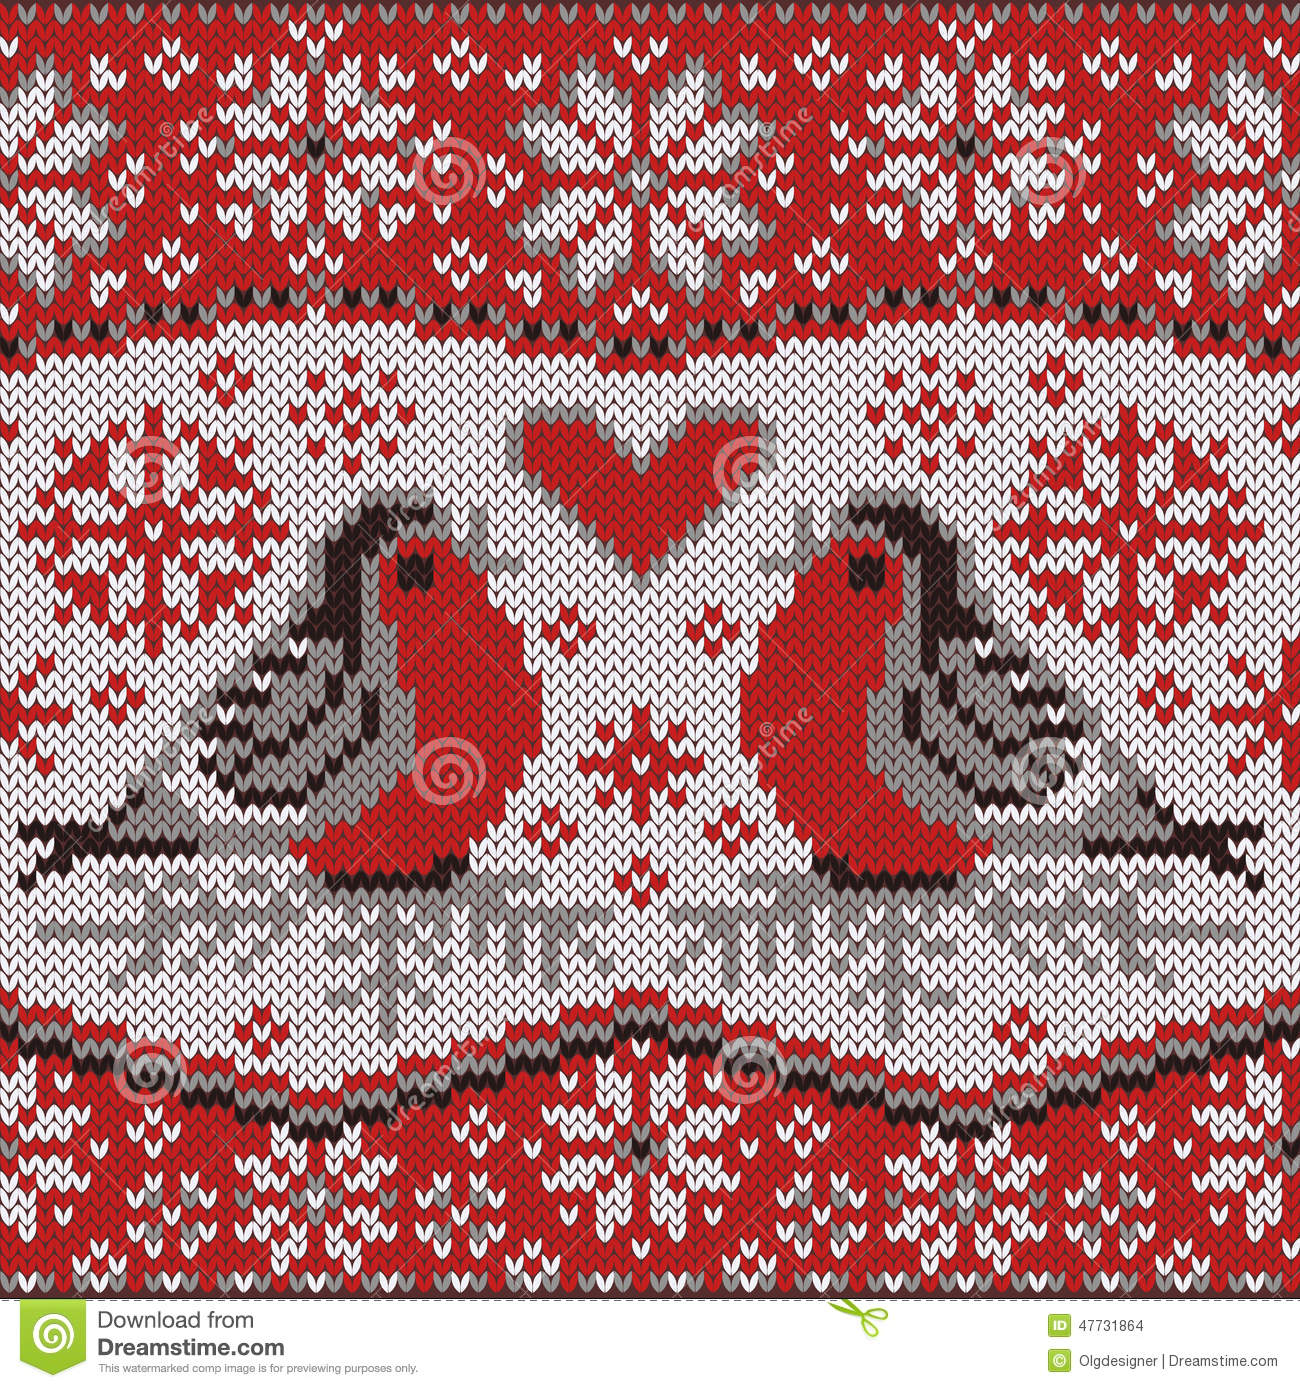 Scandinavian Knitting Patterns : Greeting Card With Bullfinches, Nordic Knitted Pattern Stock Vector - Image: ...